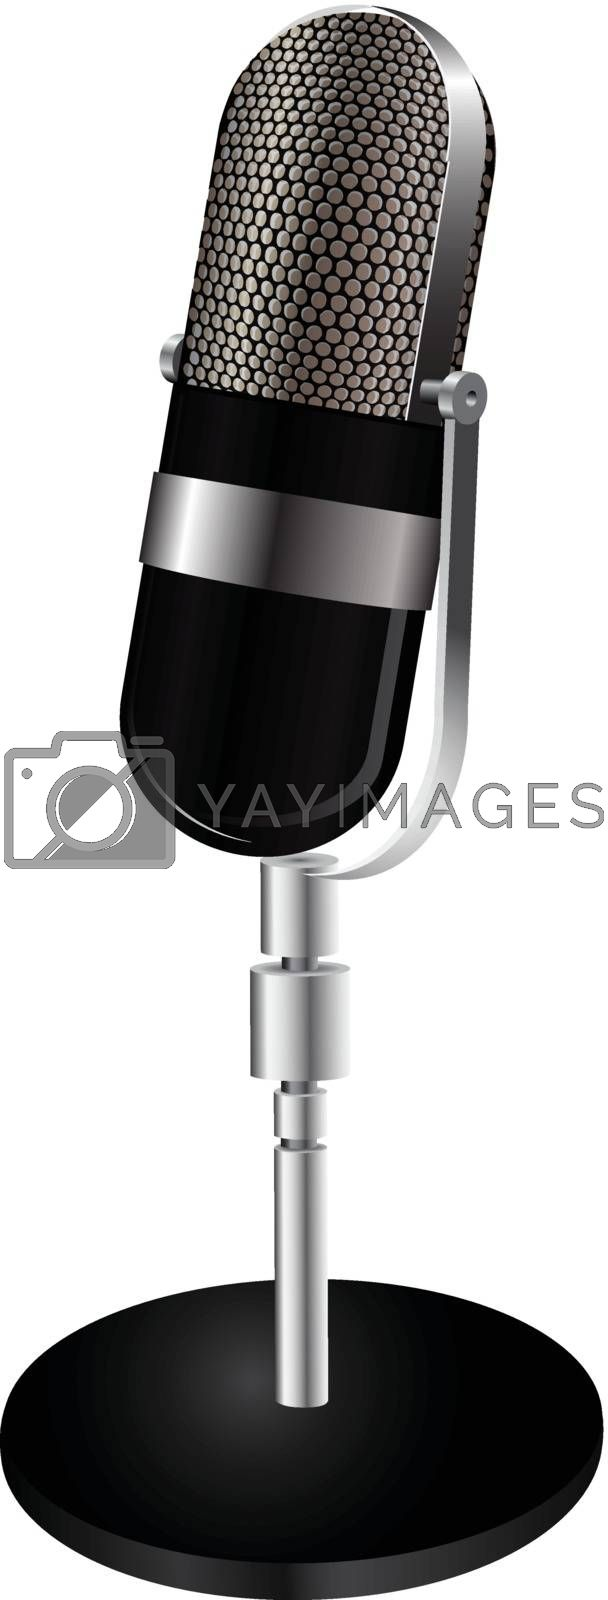 Modern microphone on a stand. Vector illustration.